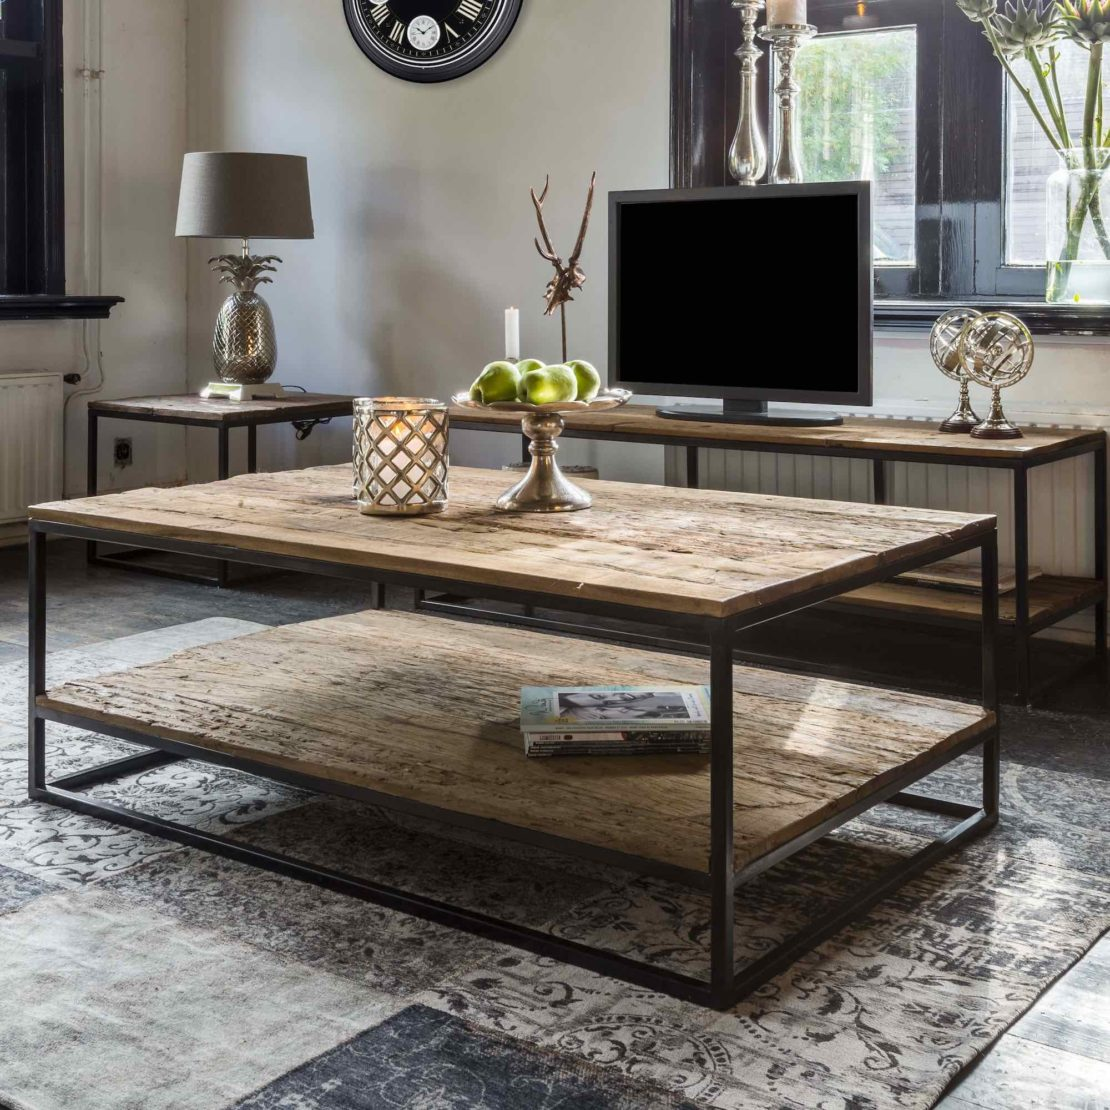 showhome collection, Industrial Recycled Wood Coffee Table